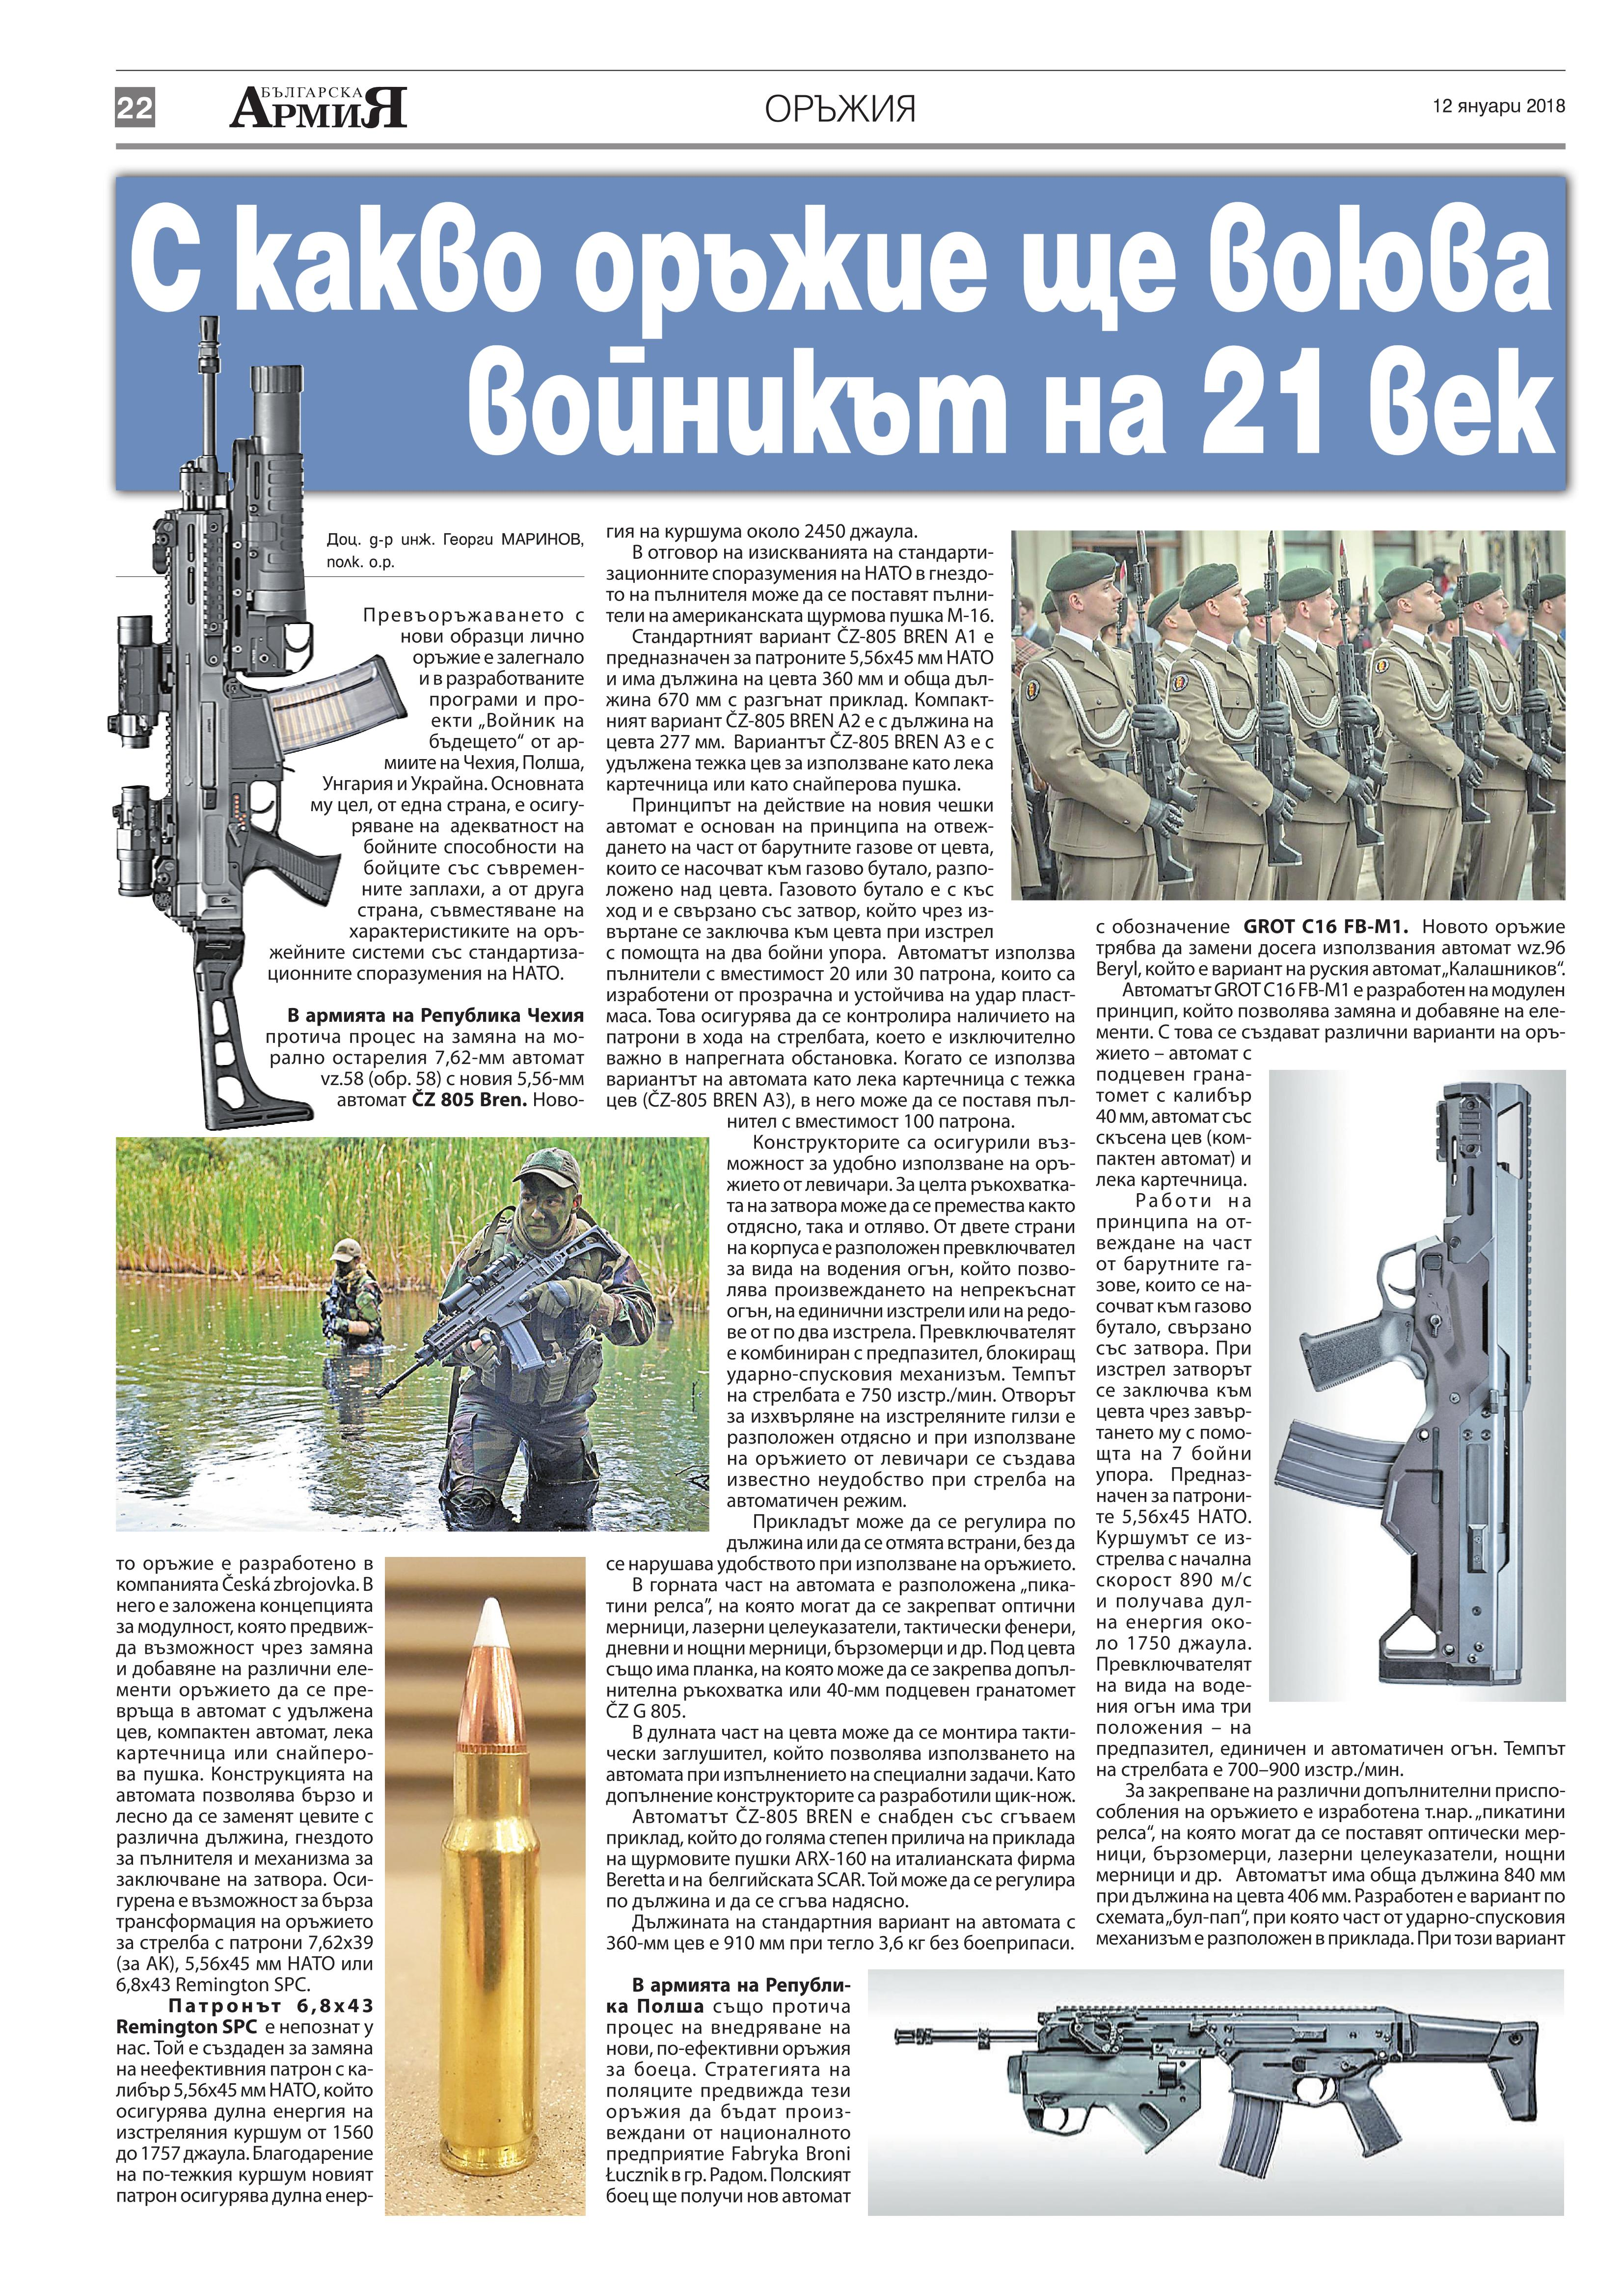 https://armymedia.bg/wp-content/uploads/2015/06/22.page1_-36.jpg